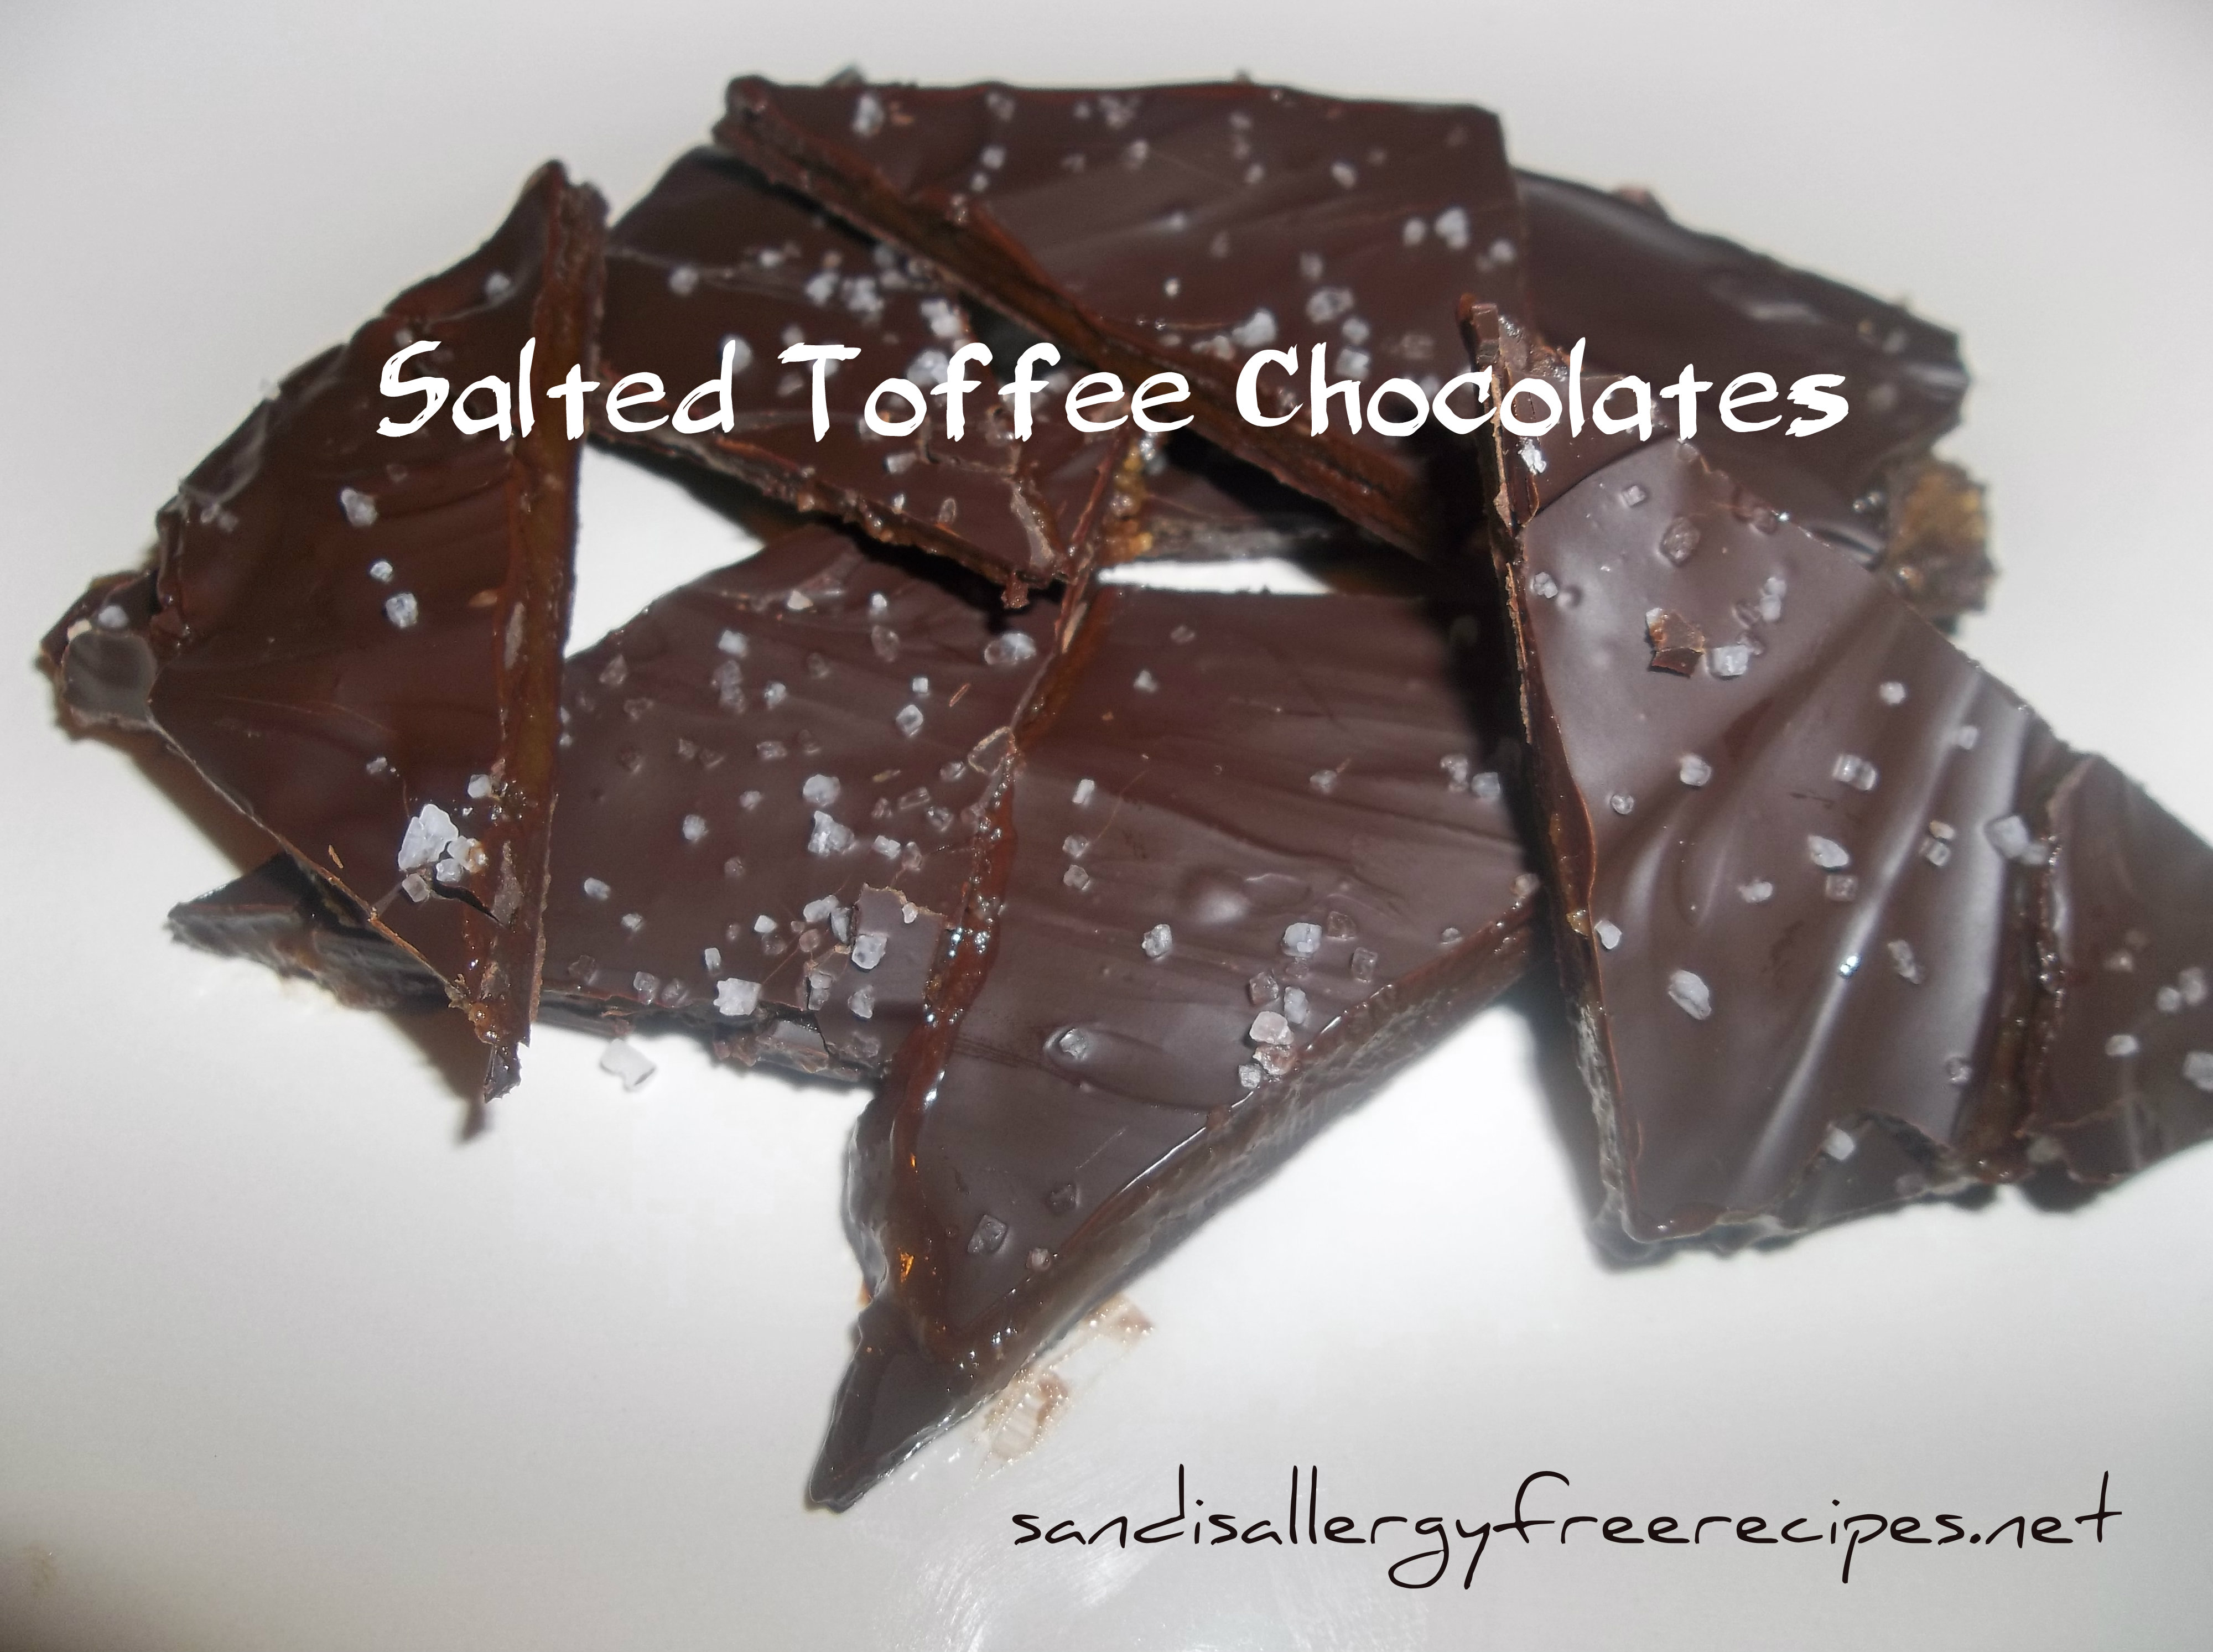 Salted Toffee Chocolates